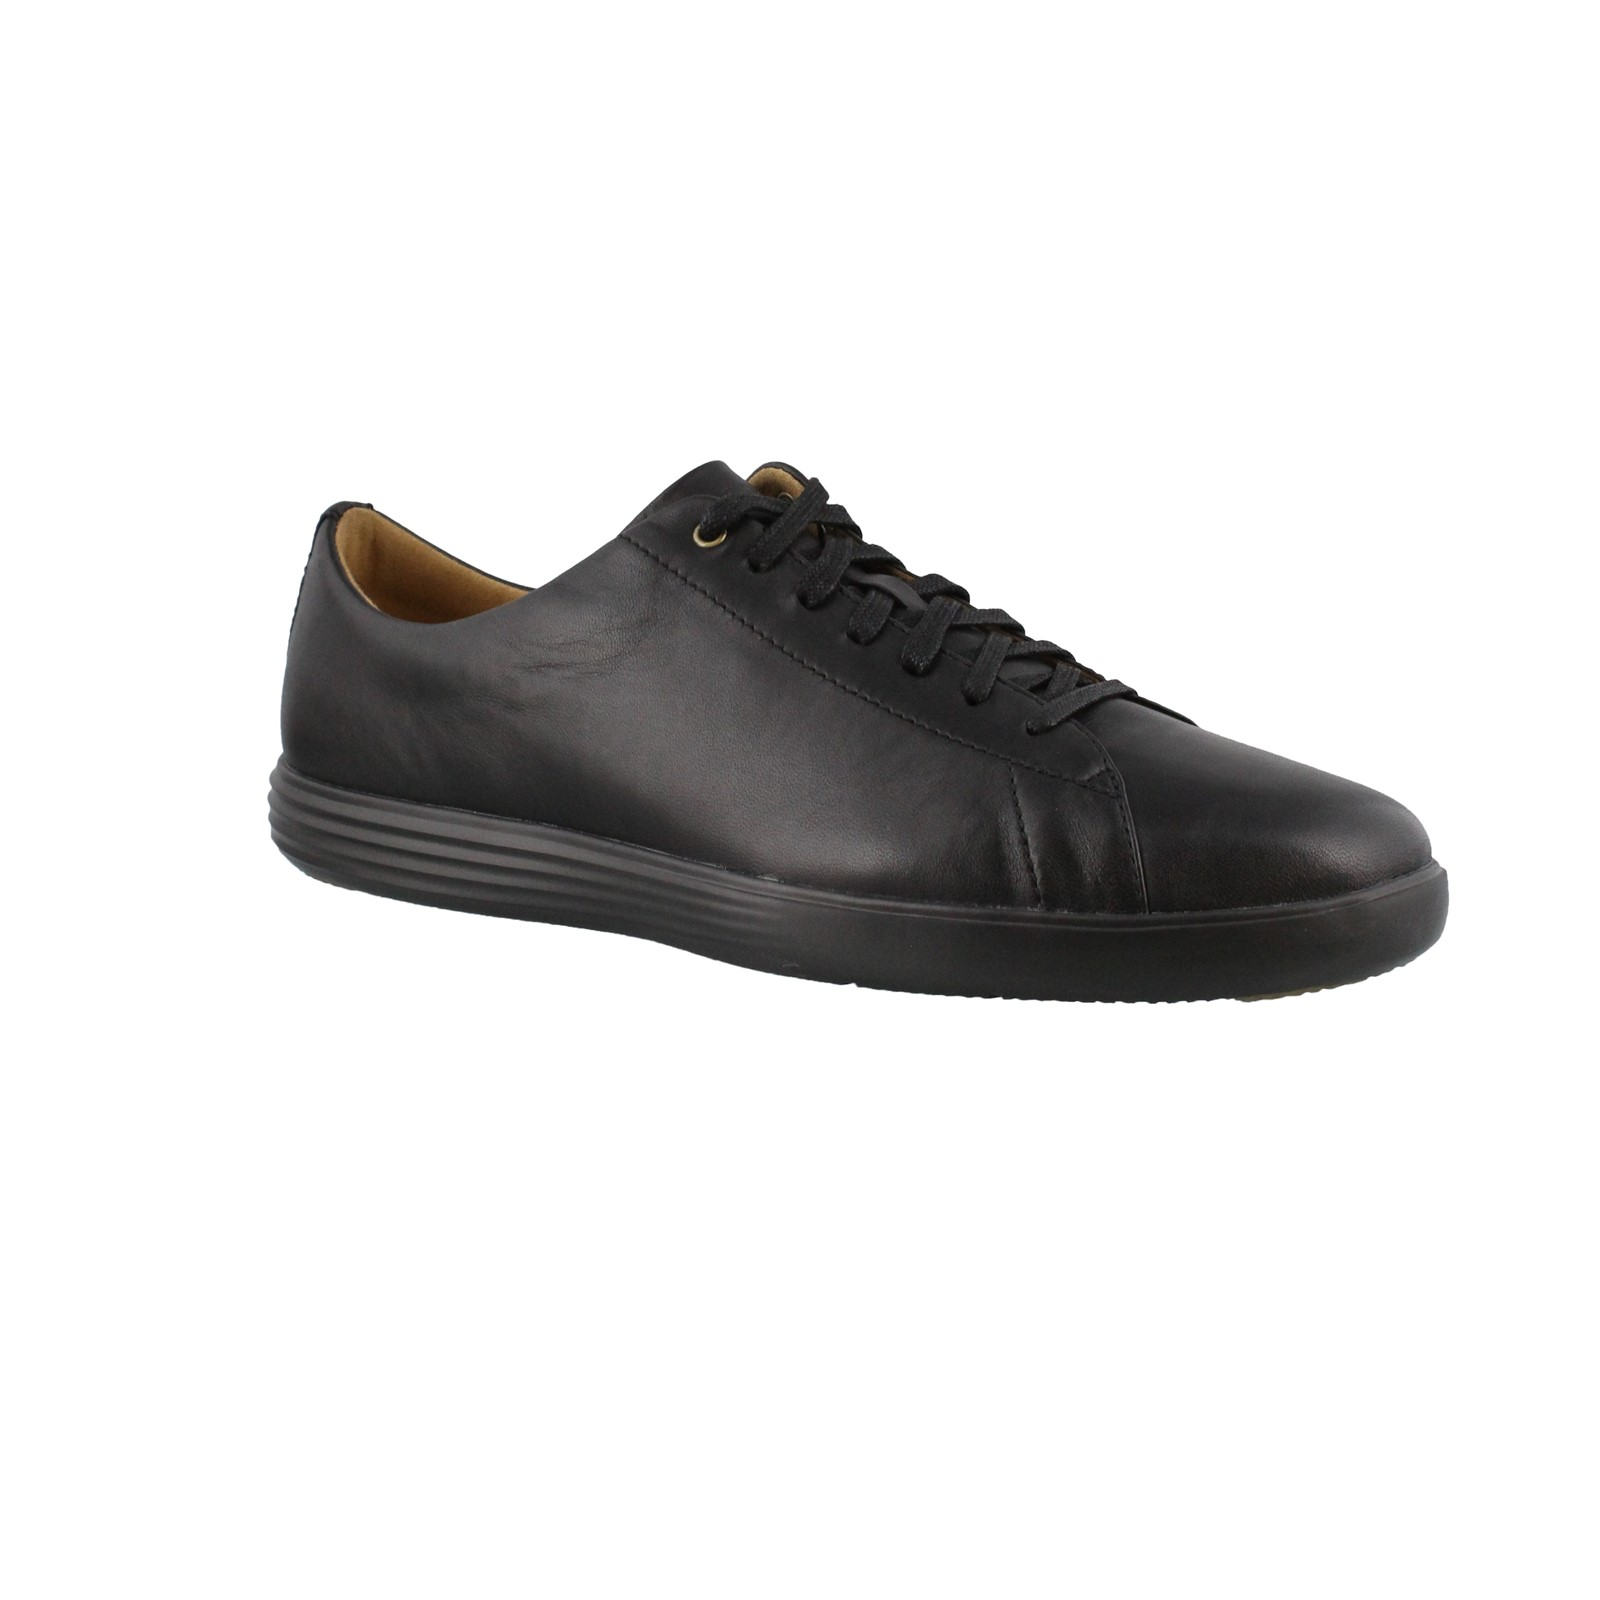 69d582bf9ba9 Next. add to favorites. Men s Cole Haan